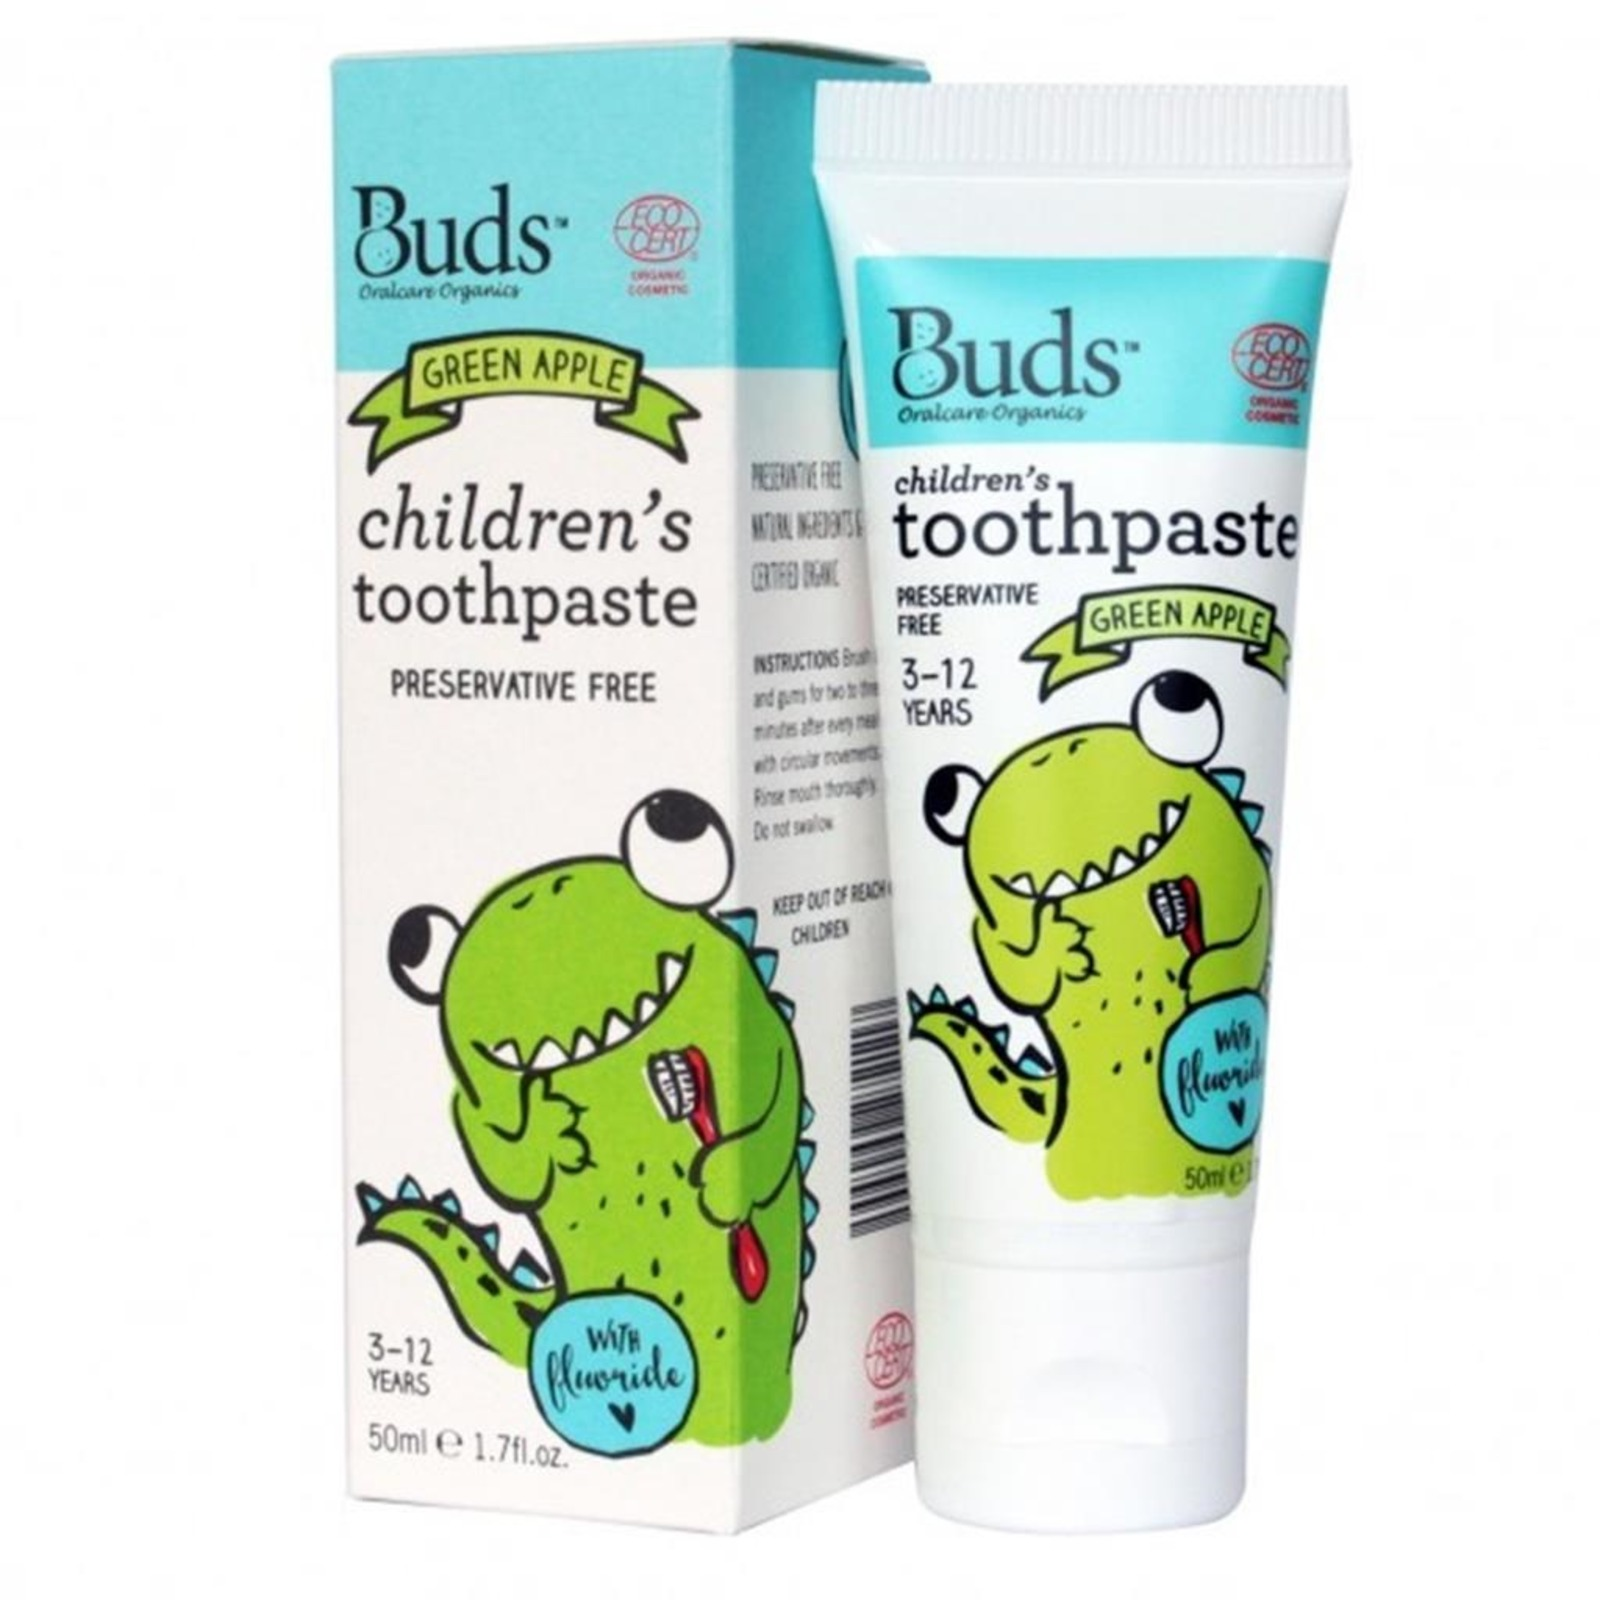 Buds Organics Childrens Toothpaste with Flouride - Green Apple